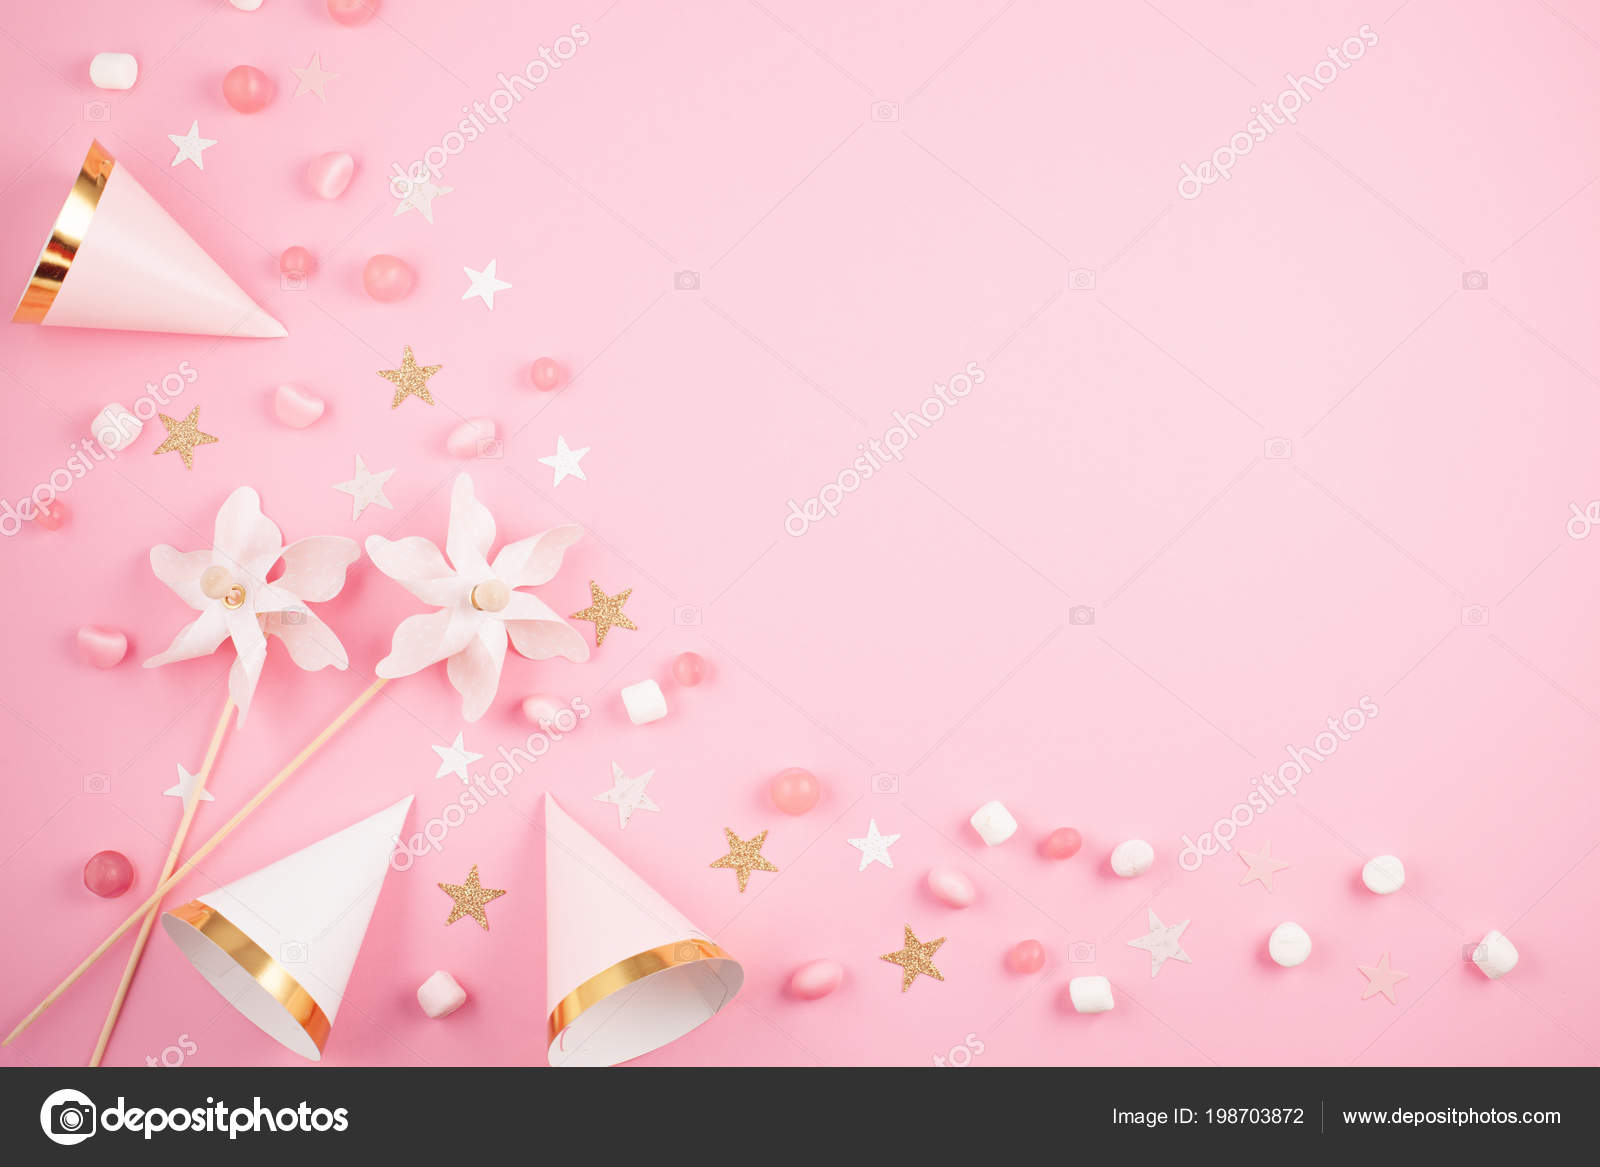 girls party accessories pink background invitation